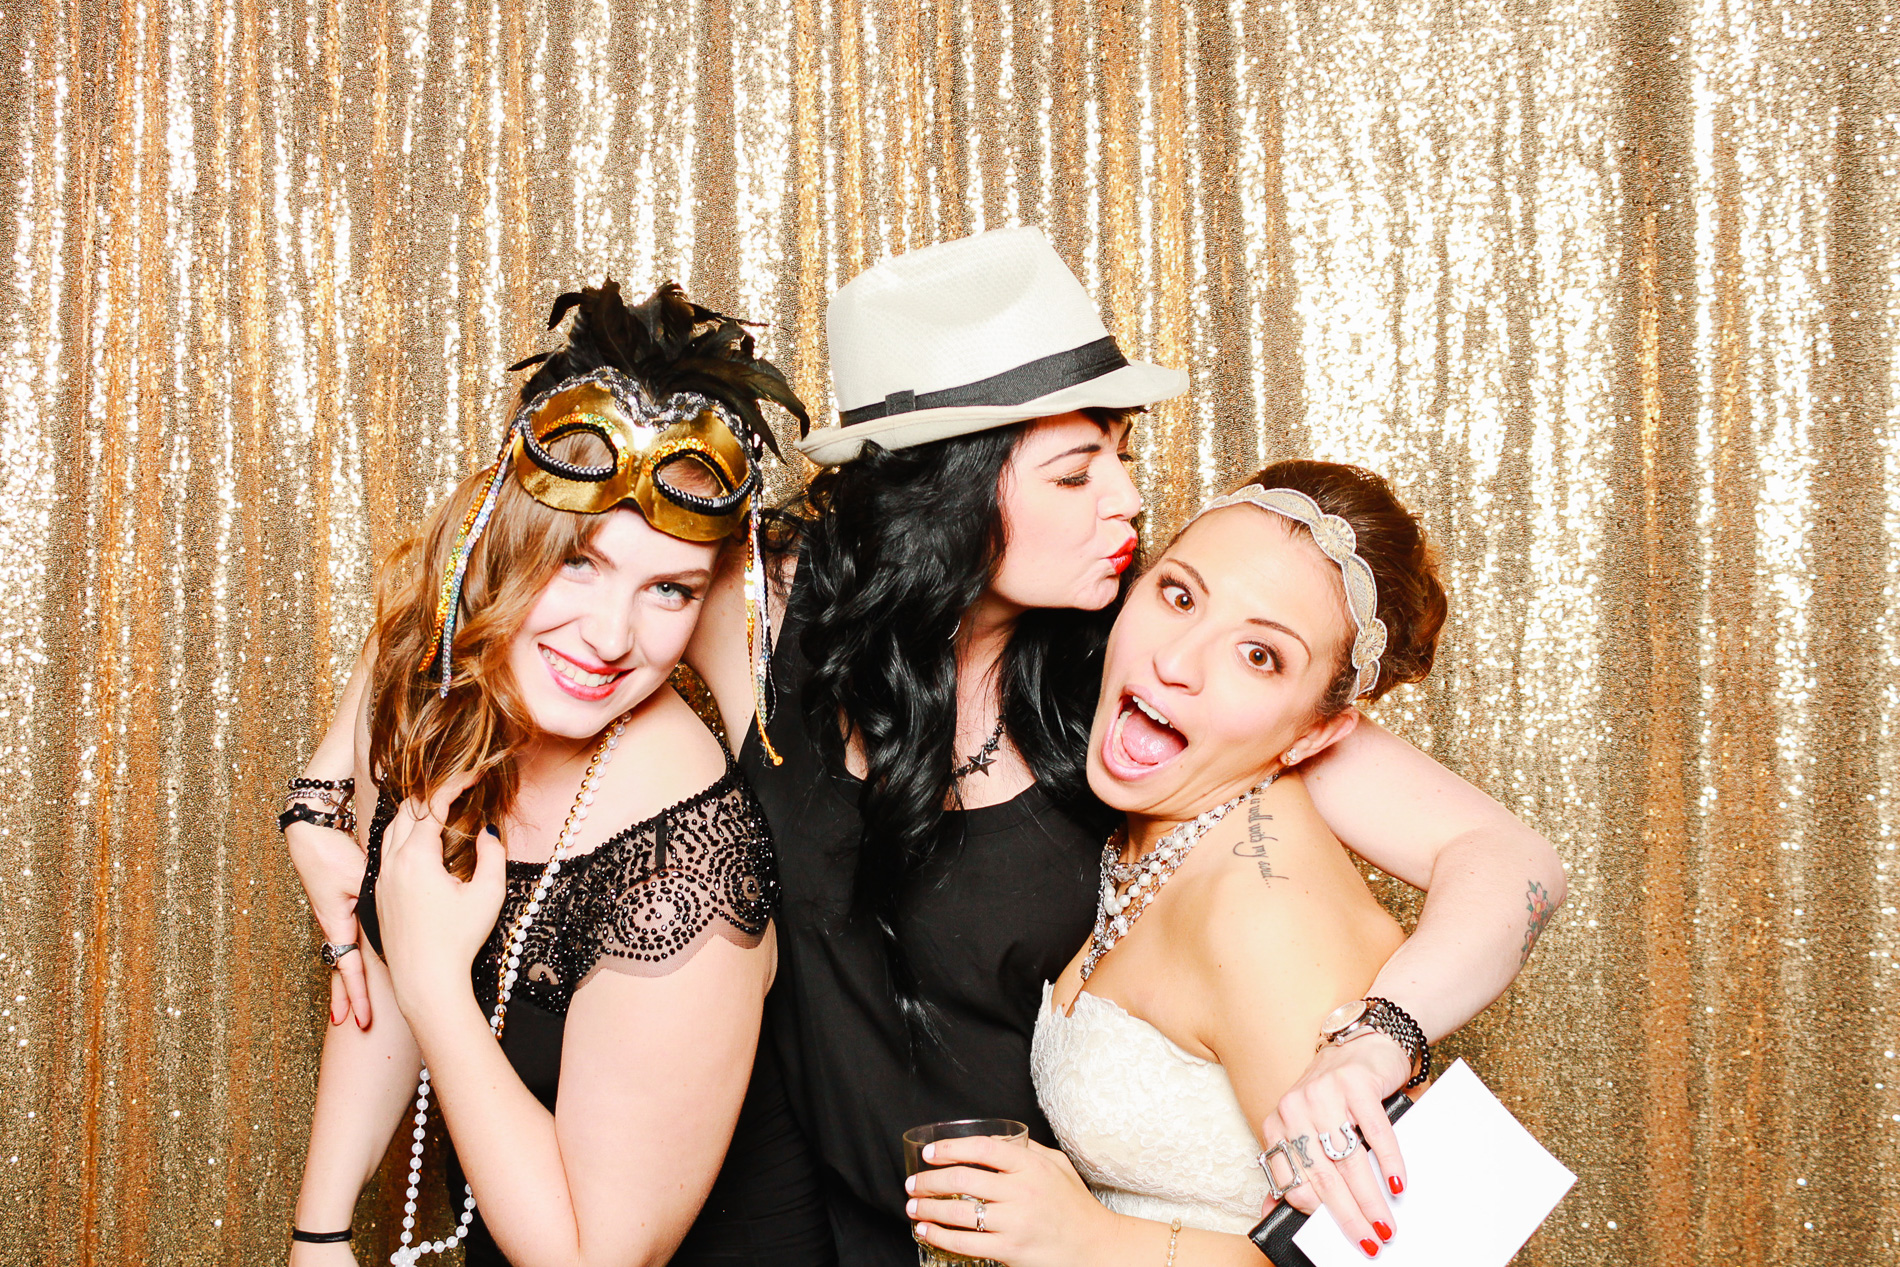 grin-and-bear-booth-photobooth-220305.jpg